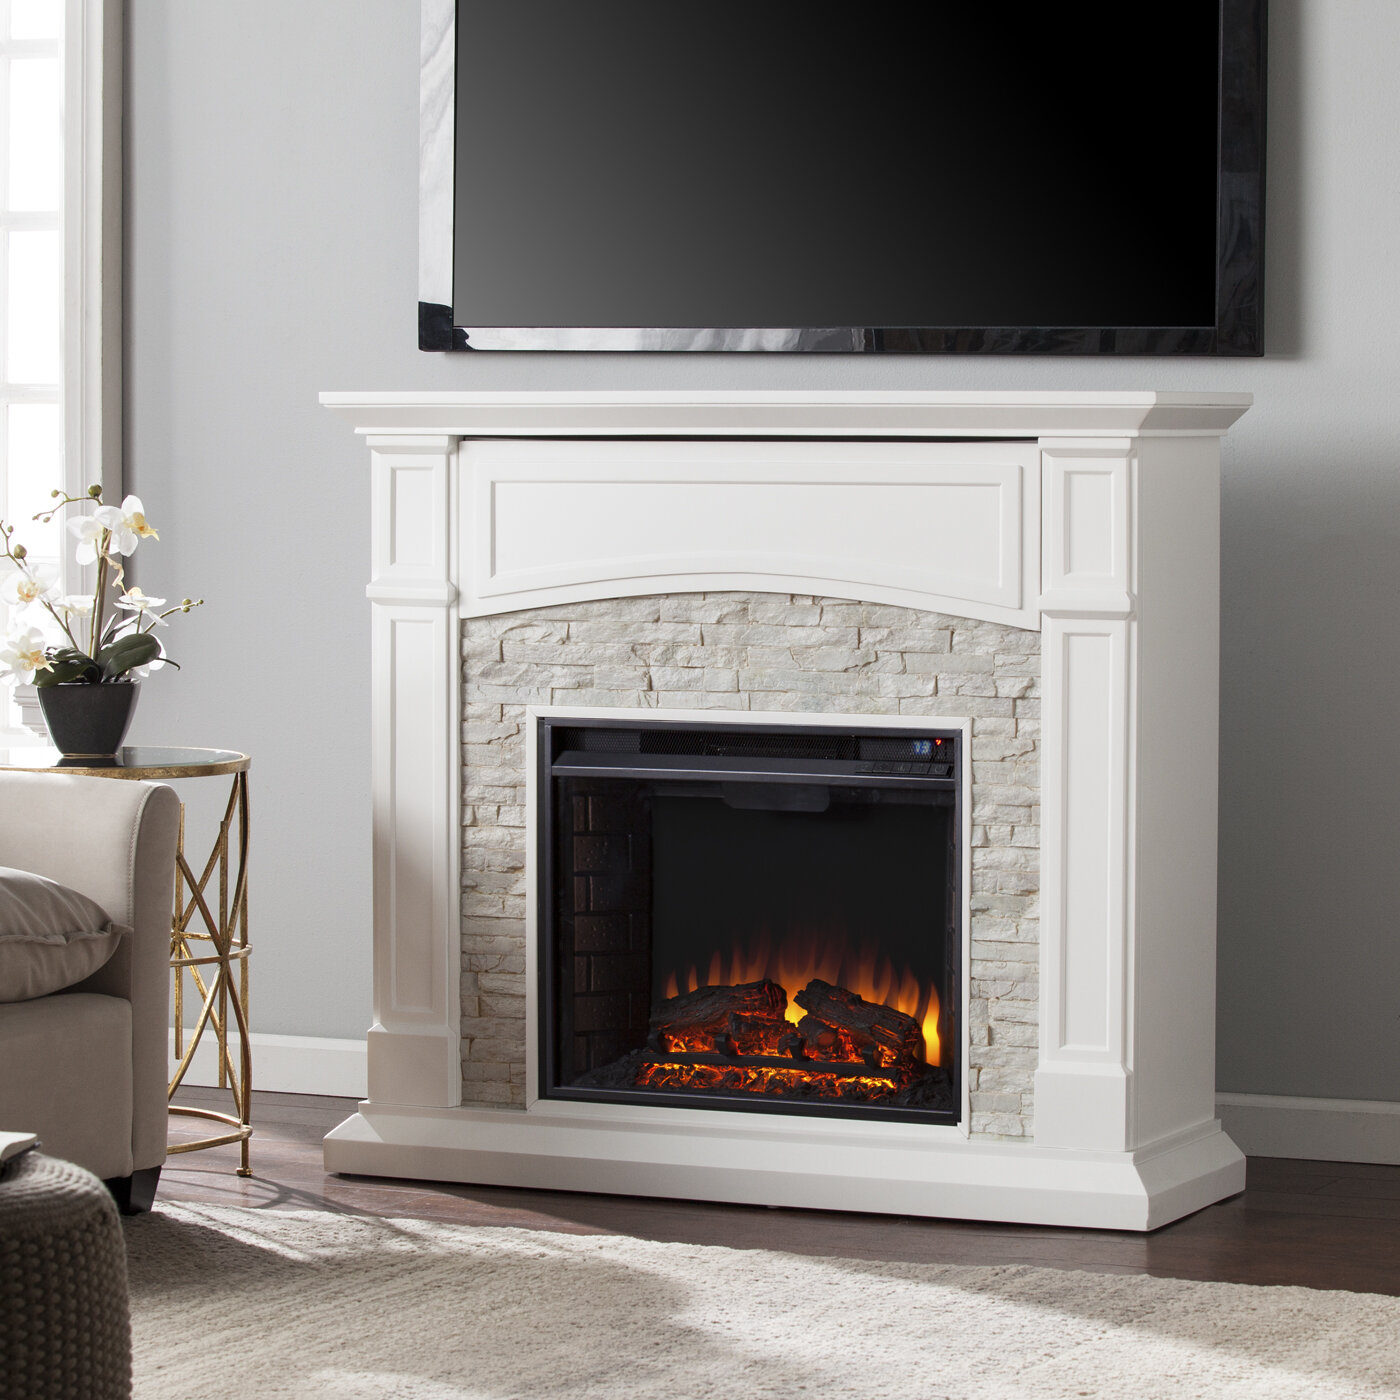 fire flames near designs me decoration gas wall propane white corner fireplace contemporary fires electric in fancy modern entertainment plug frameless canada center mantels amish ventless